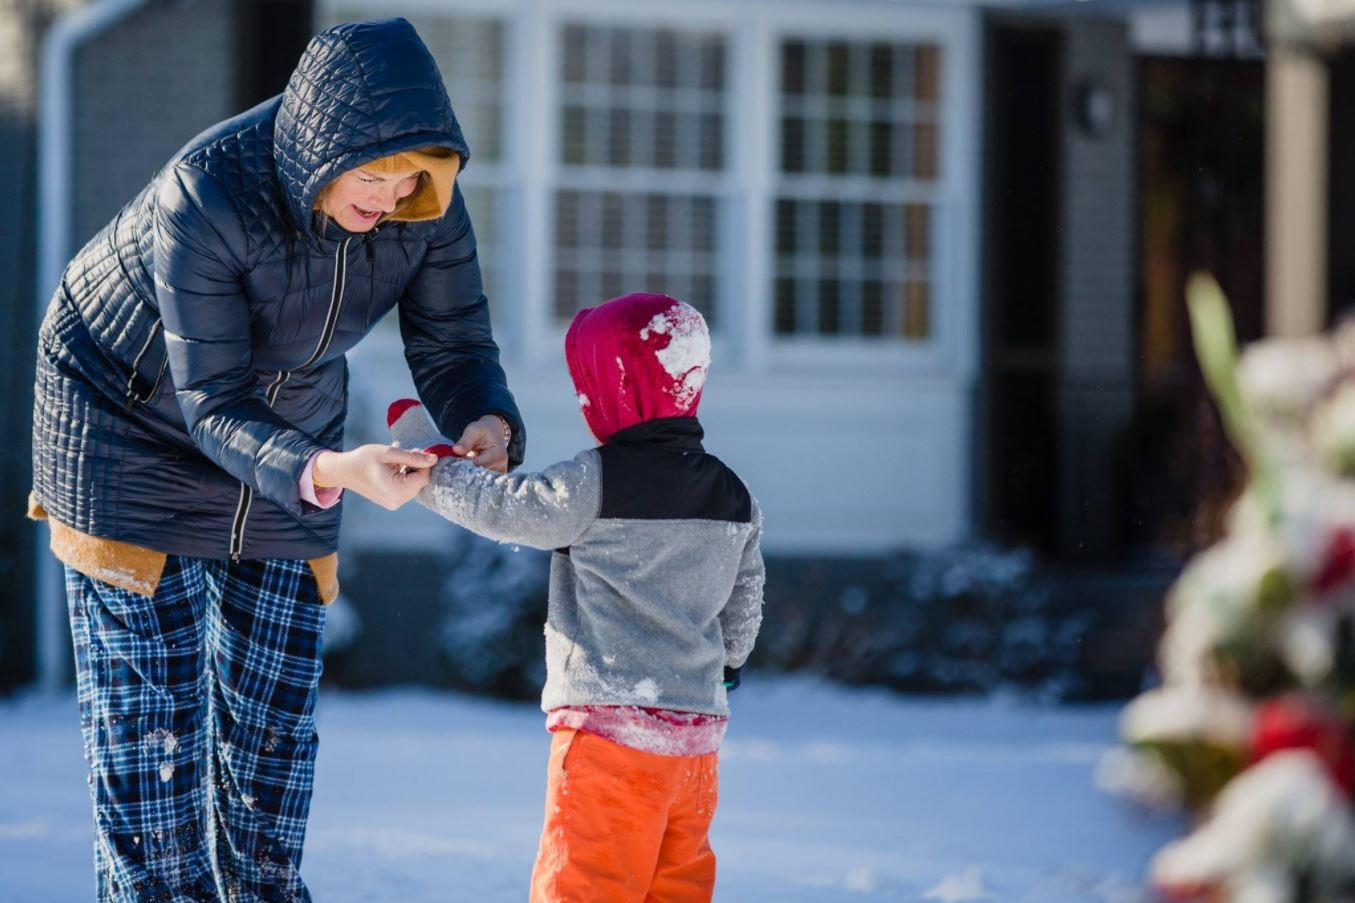 MICAH GREEN / THE SUMTER ITEMVictoria Bailey helps her son Max get on dry mittens Thursday morning in Sumter.